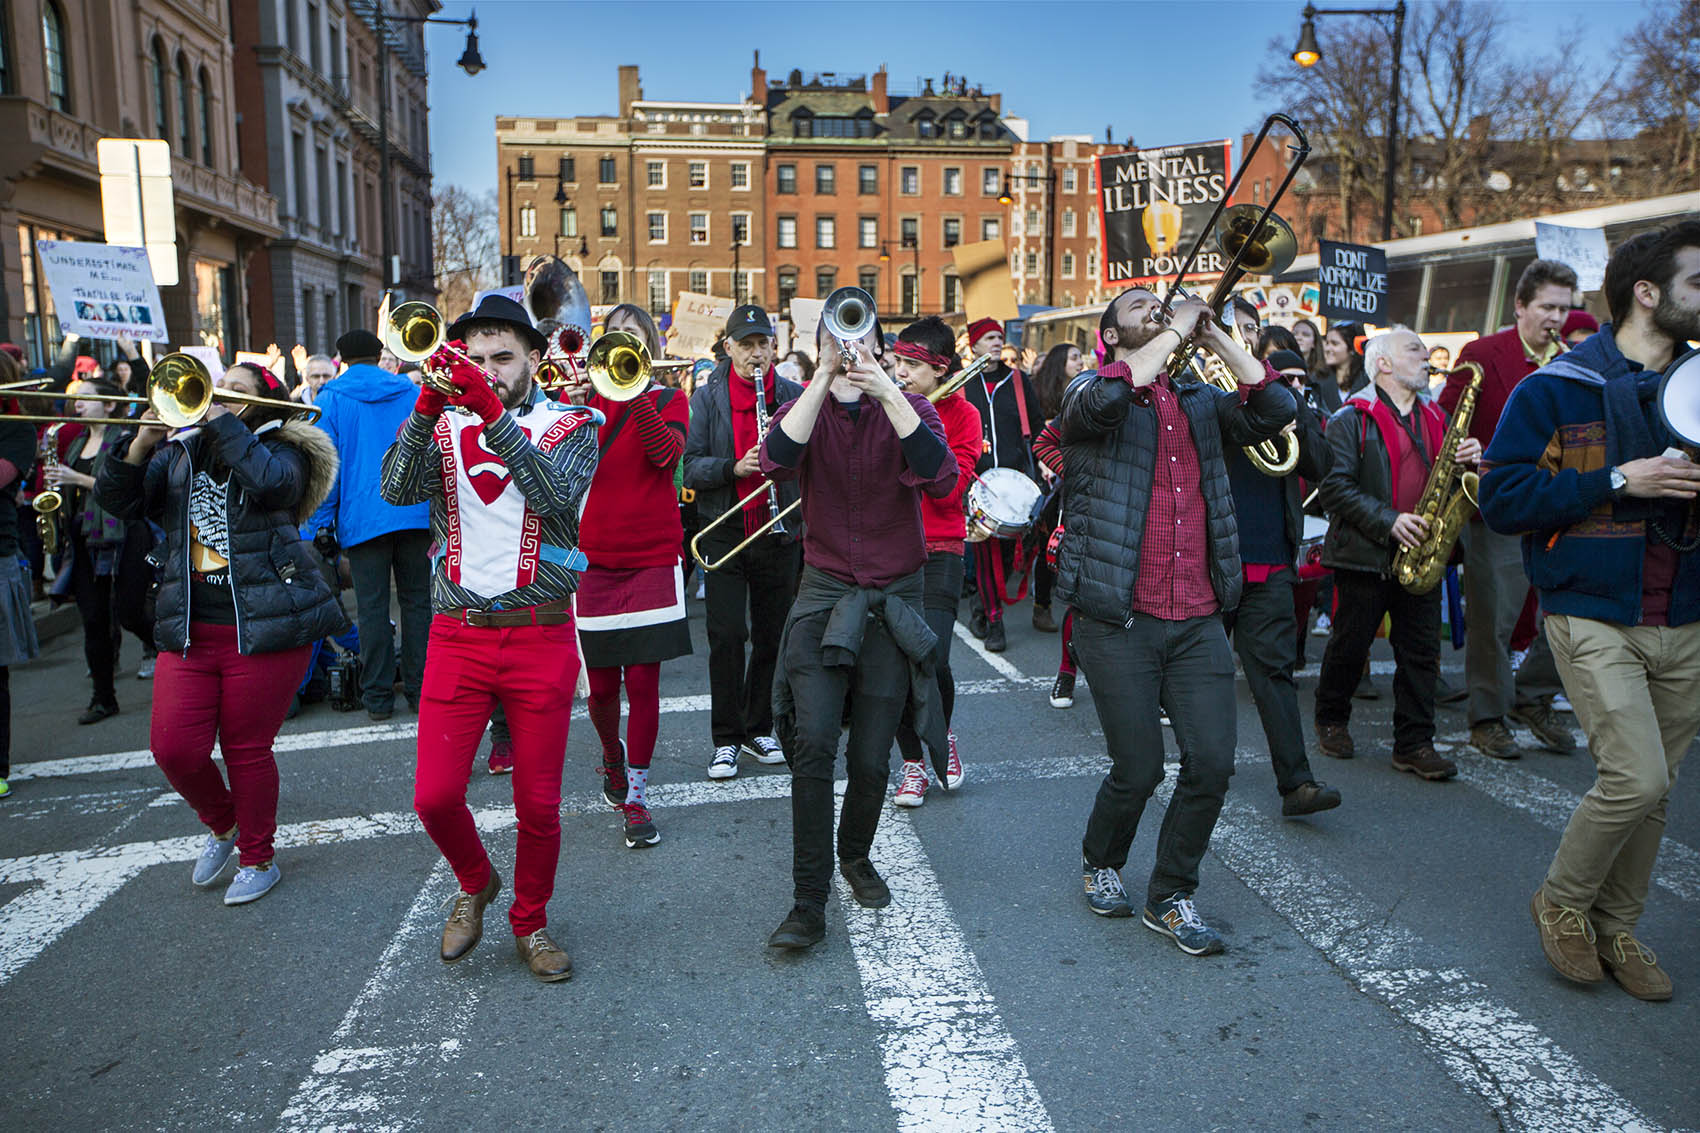 Somerville's Second Line Social Aid and Pleasure Society Brass Band plays while marching down Arlington Street in Boston during the Women's March for America on Saturday. (Jesse Costa/WBUR)